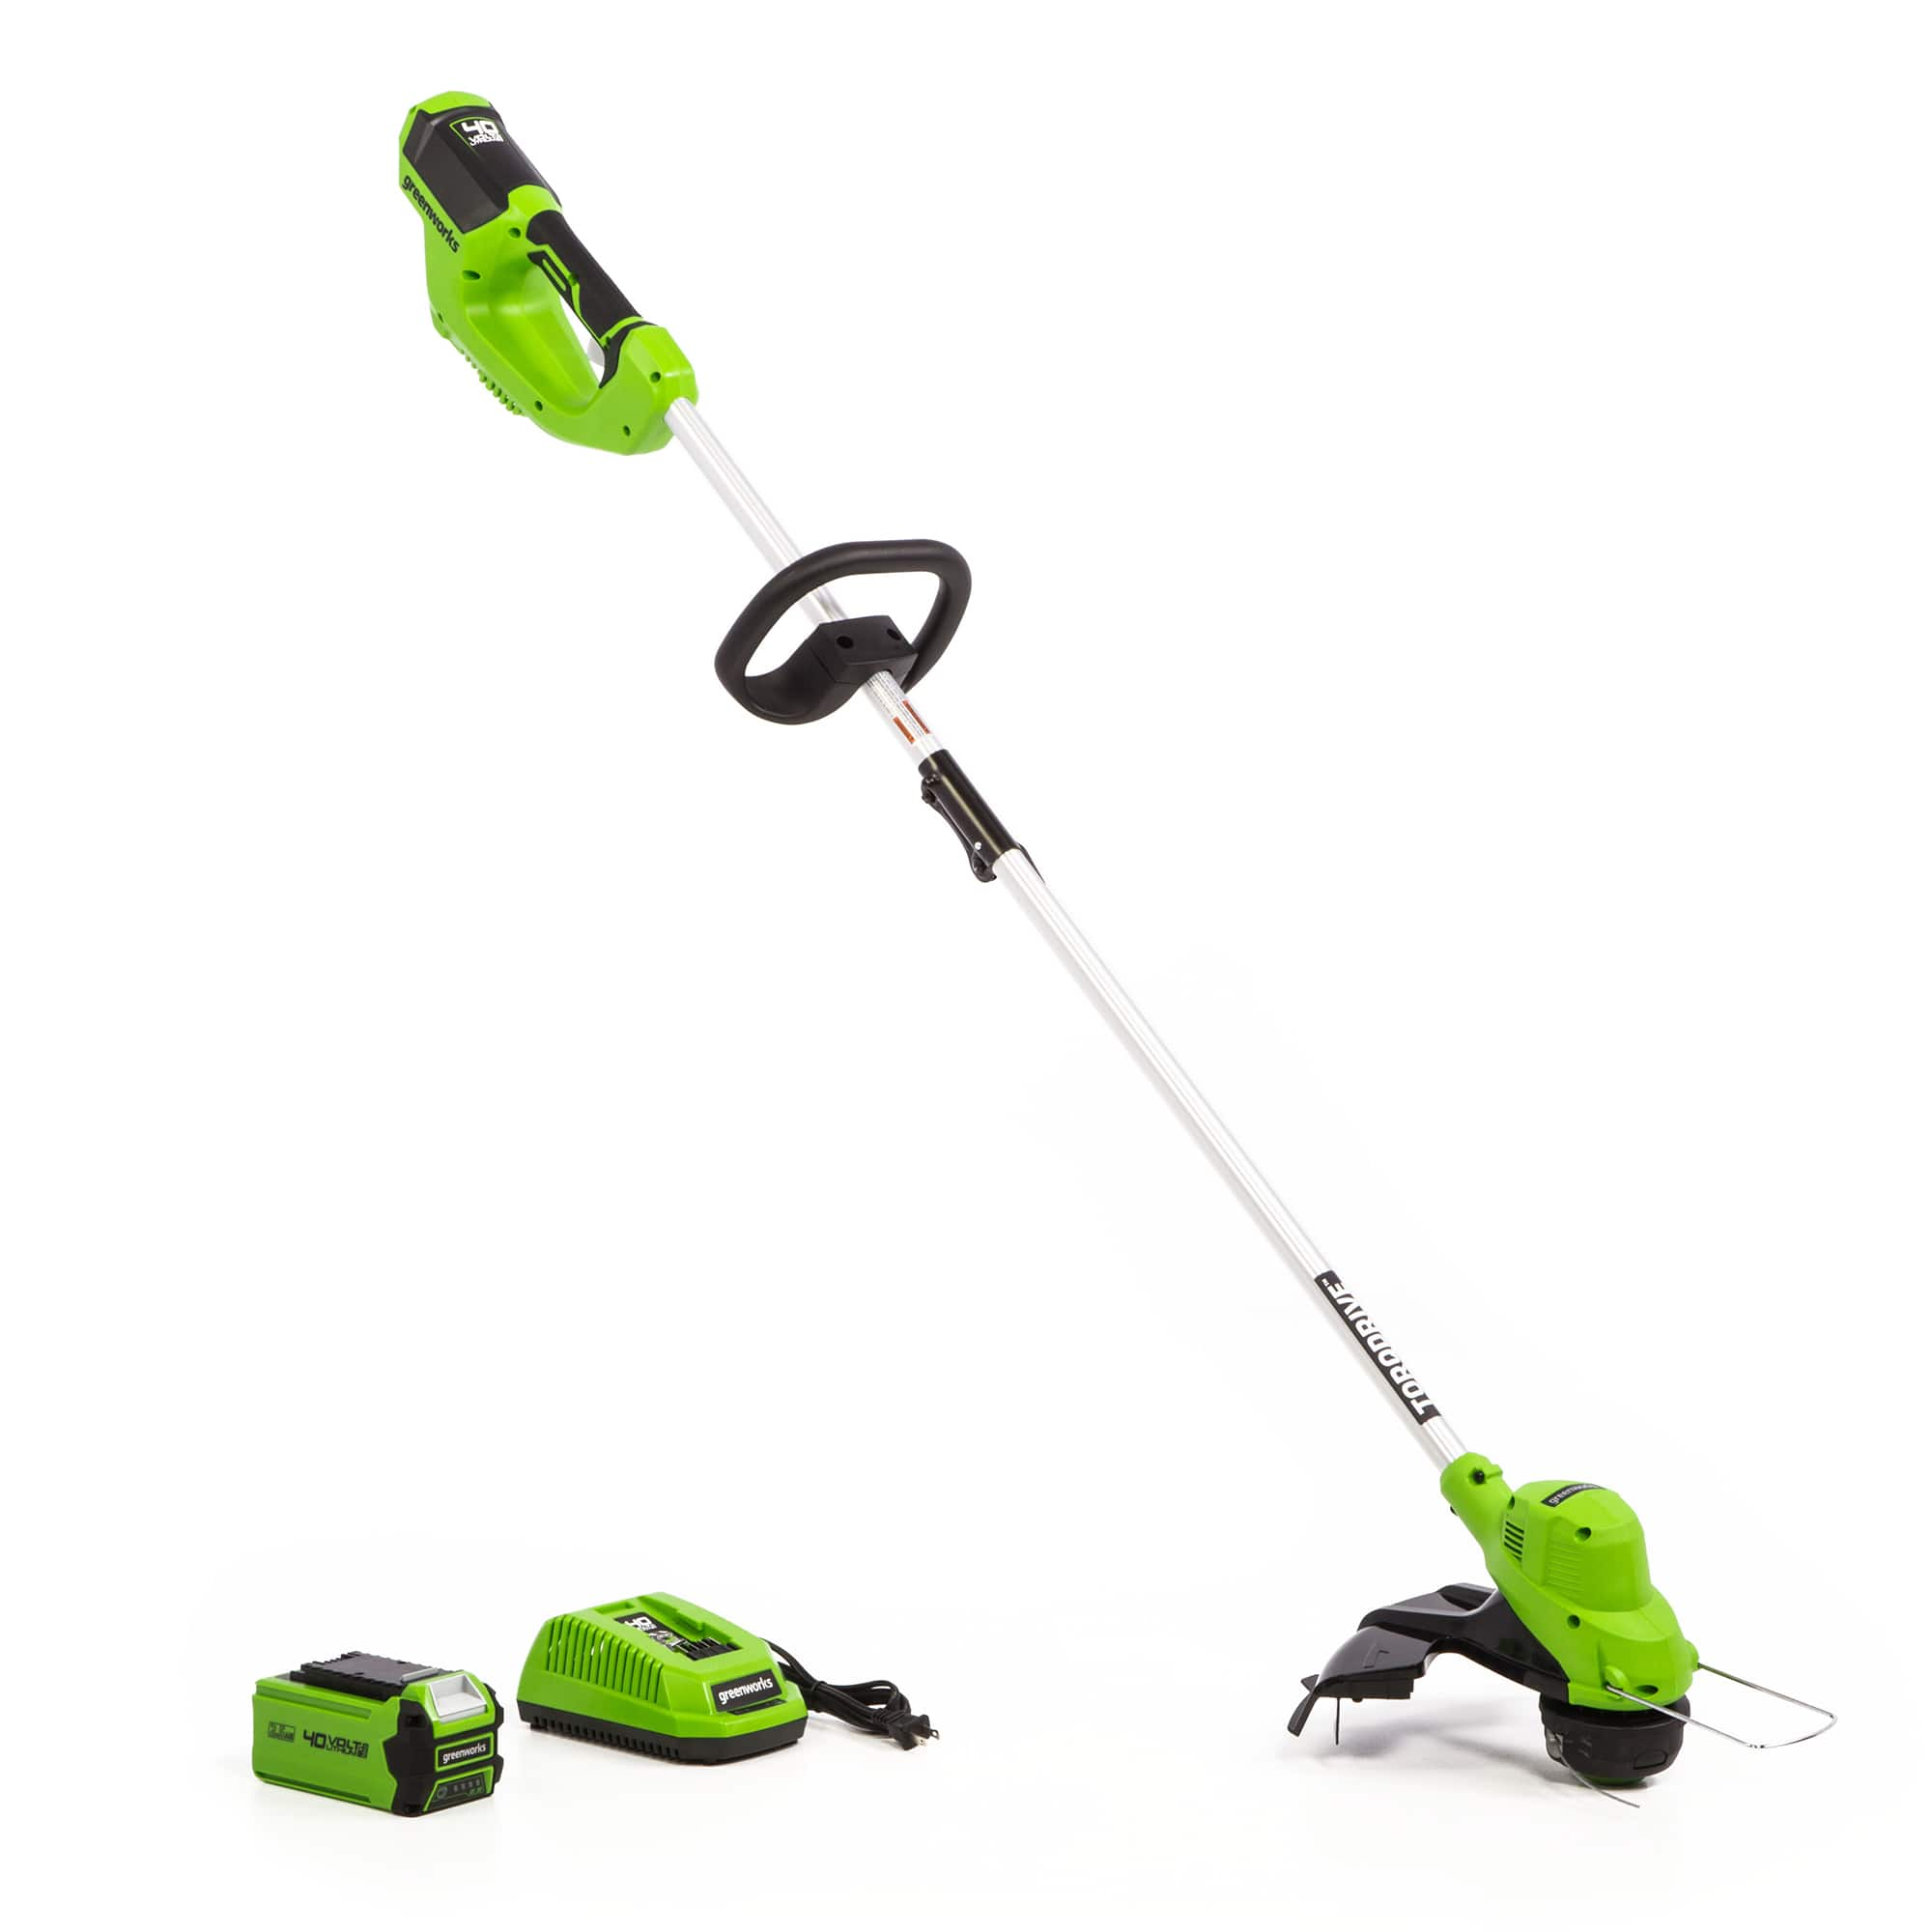 YMMV,  Greenworks 40V 15-Inch Straight Shaft String Trimmer 2.5Ah Battery and Quick Charger Included 2111802 $79.99